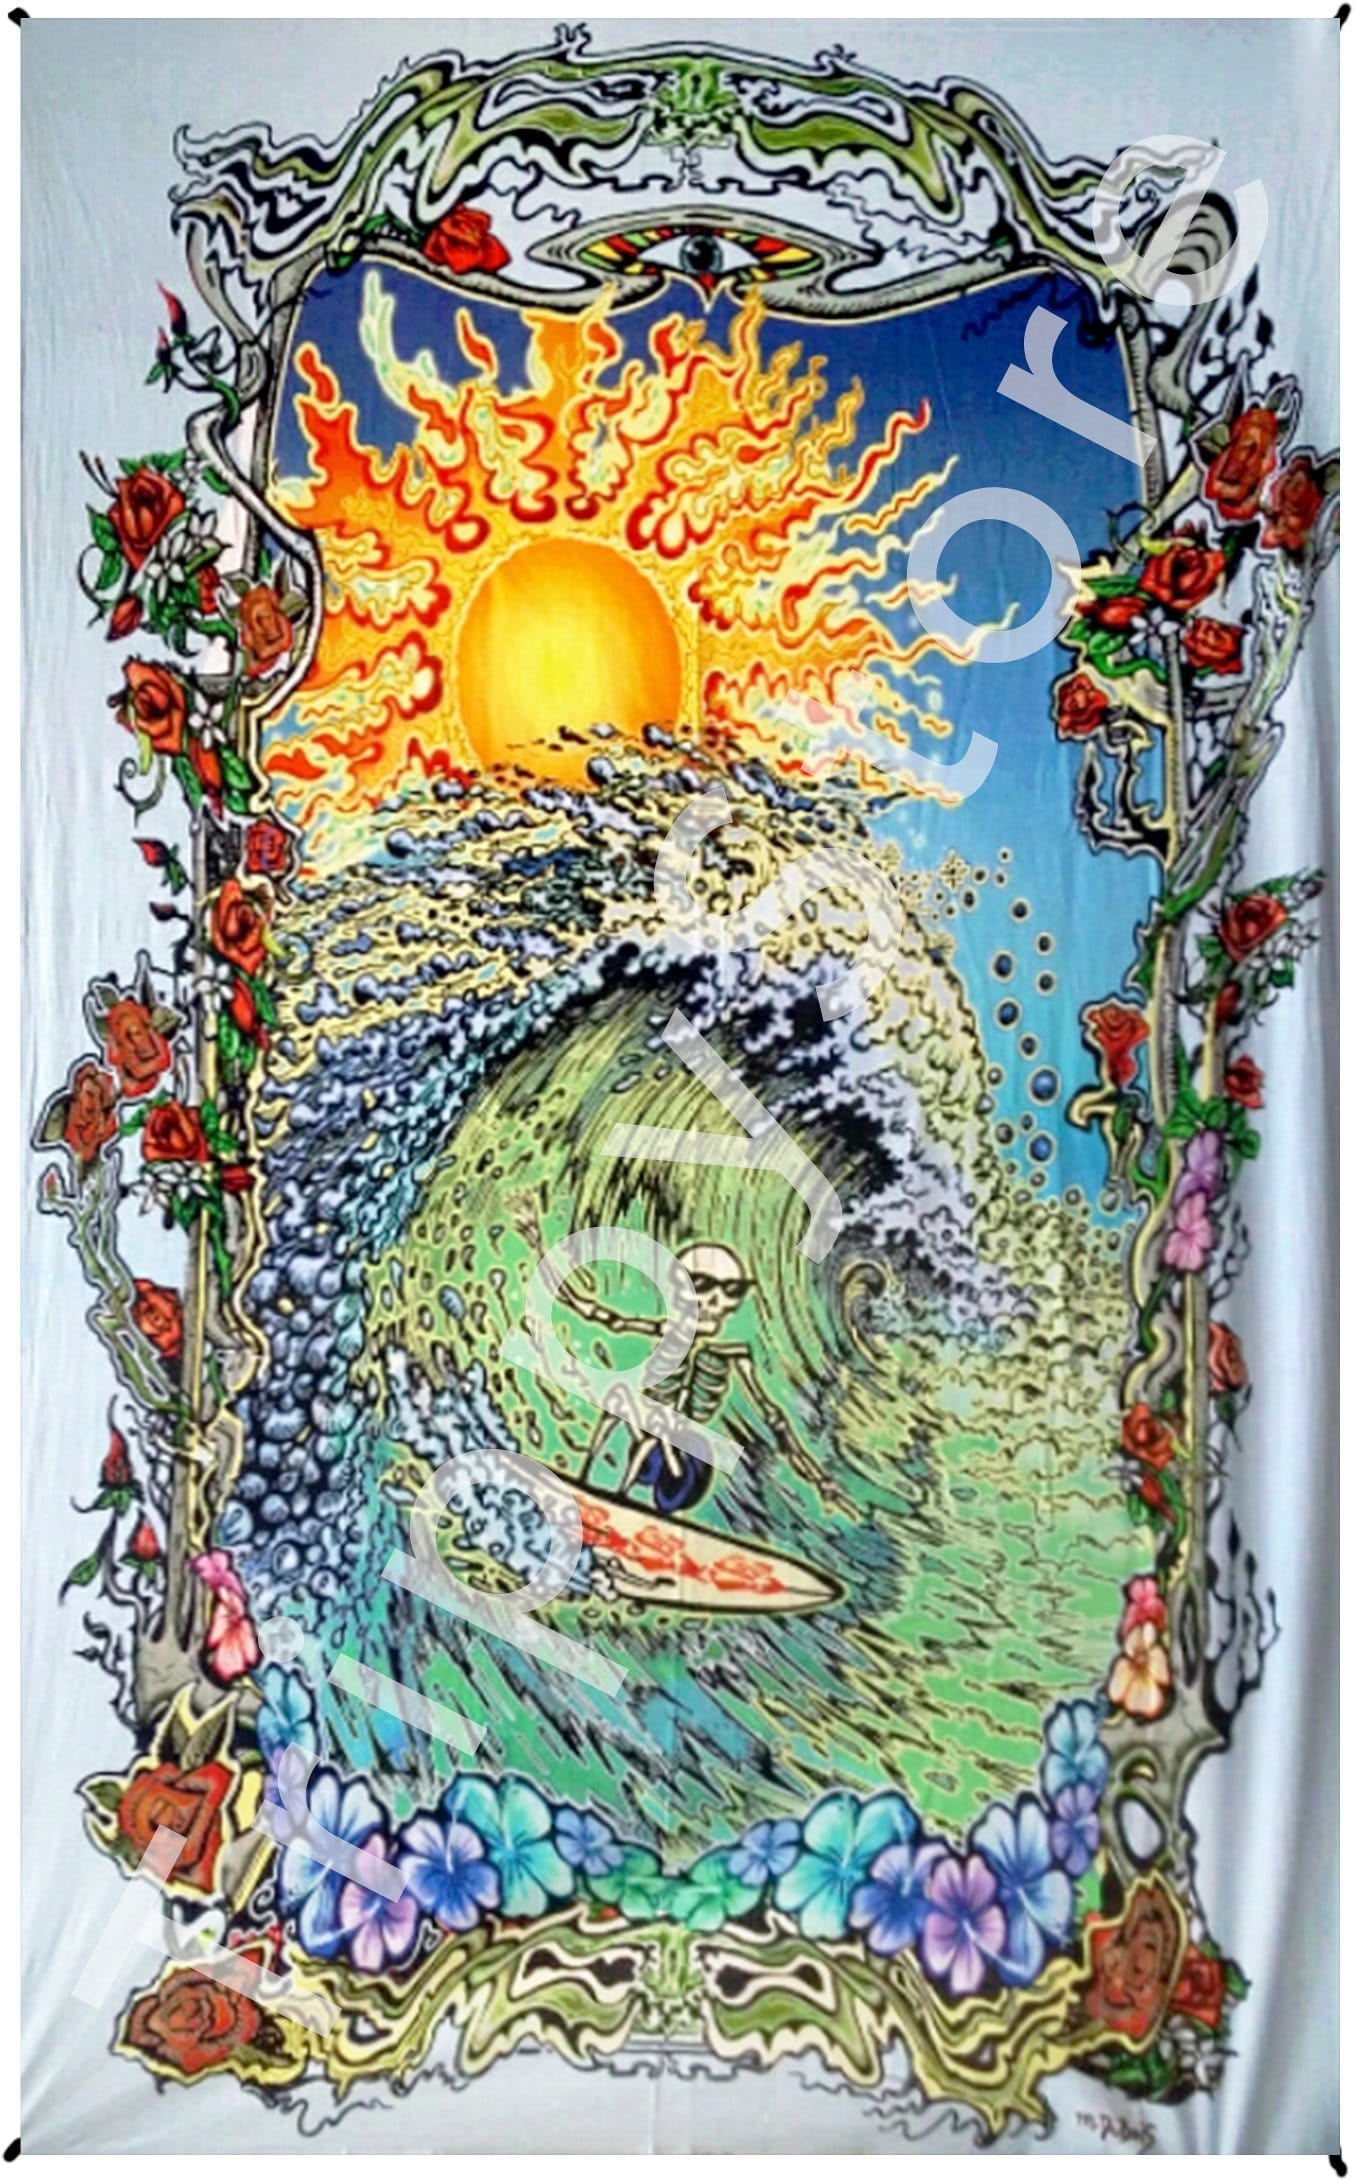 Tapestries Mike Dubois - Surfing Skeleton - Tapestry 013598